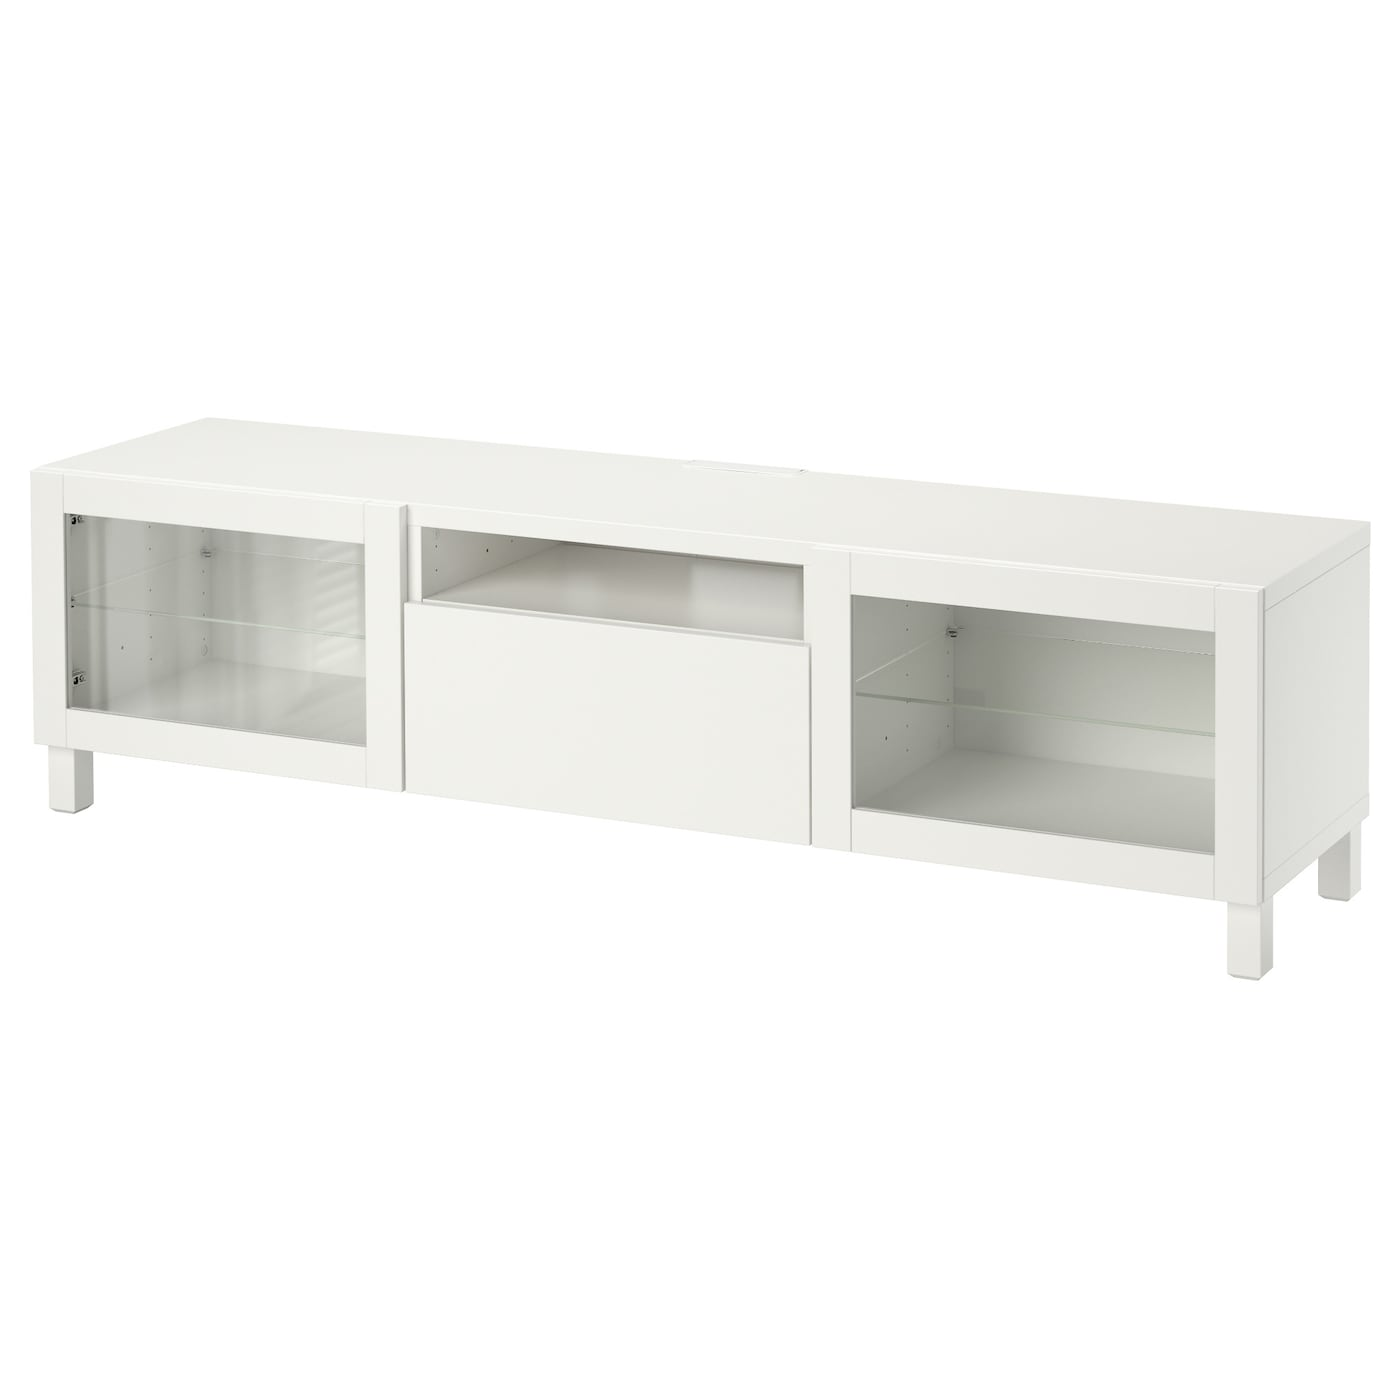 Best Tv Bench Lappviken Sindvik White Clear Glass 180x40x48 Cm Ikea # Meuble Tv Ferme Ikea